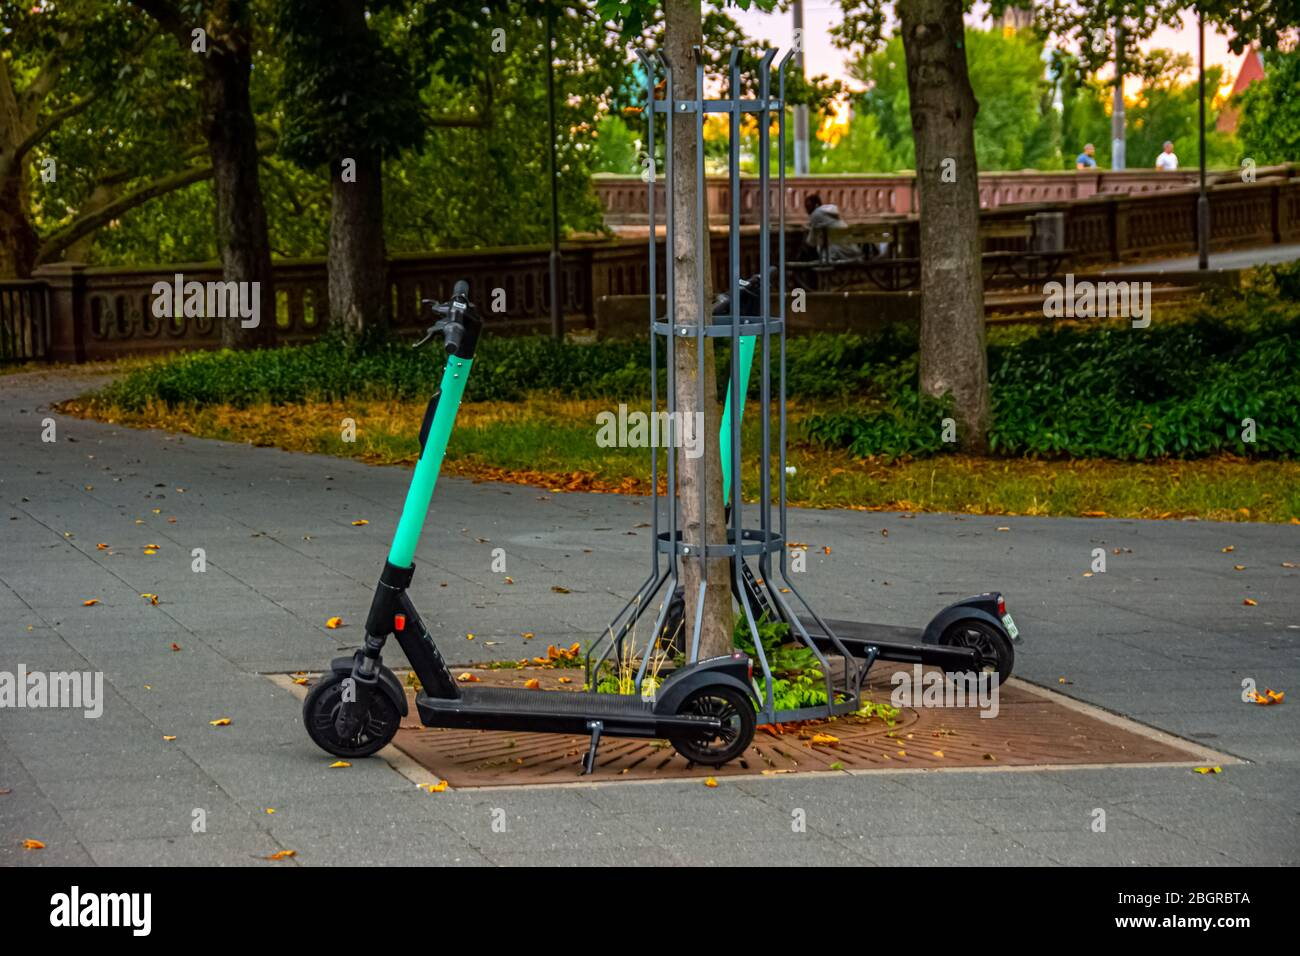 electric-scooters-parked-and-ready-for-renting-2BGRBTA.jpg?profile=RESIZE_400x